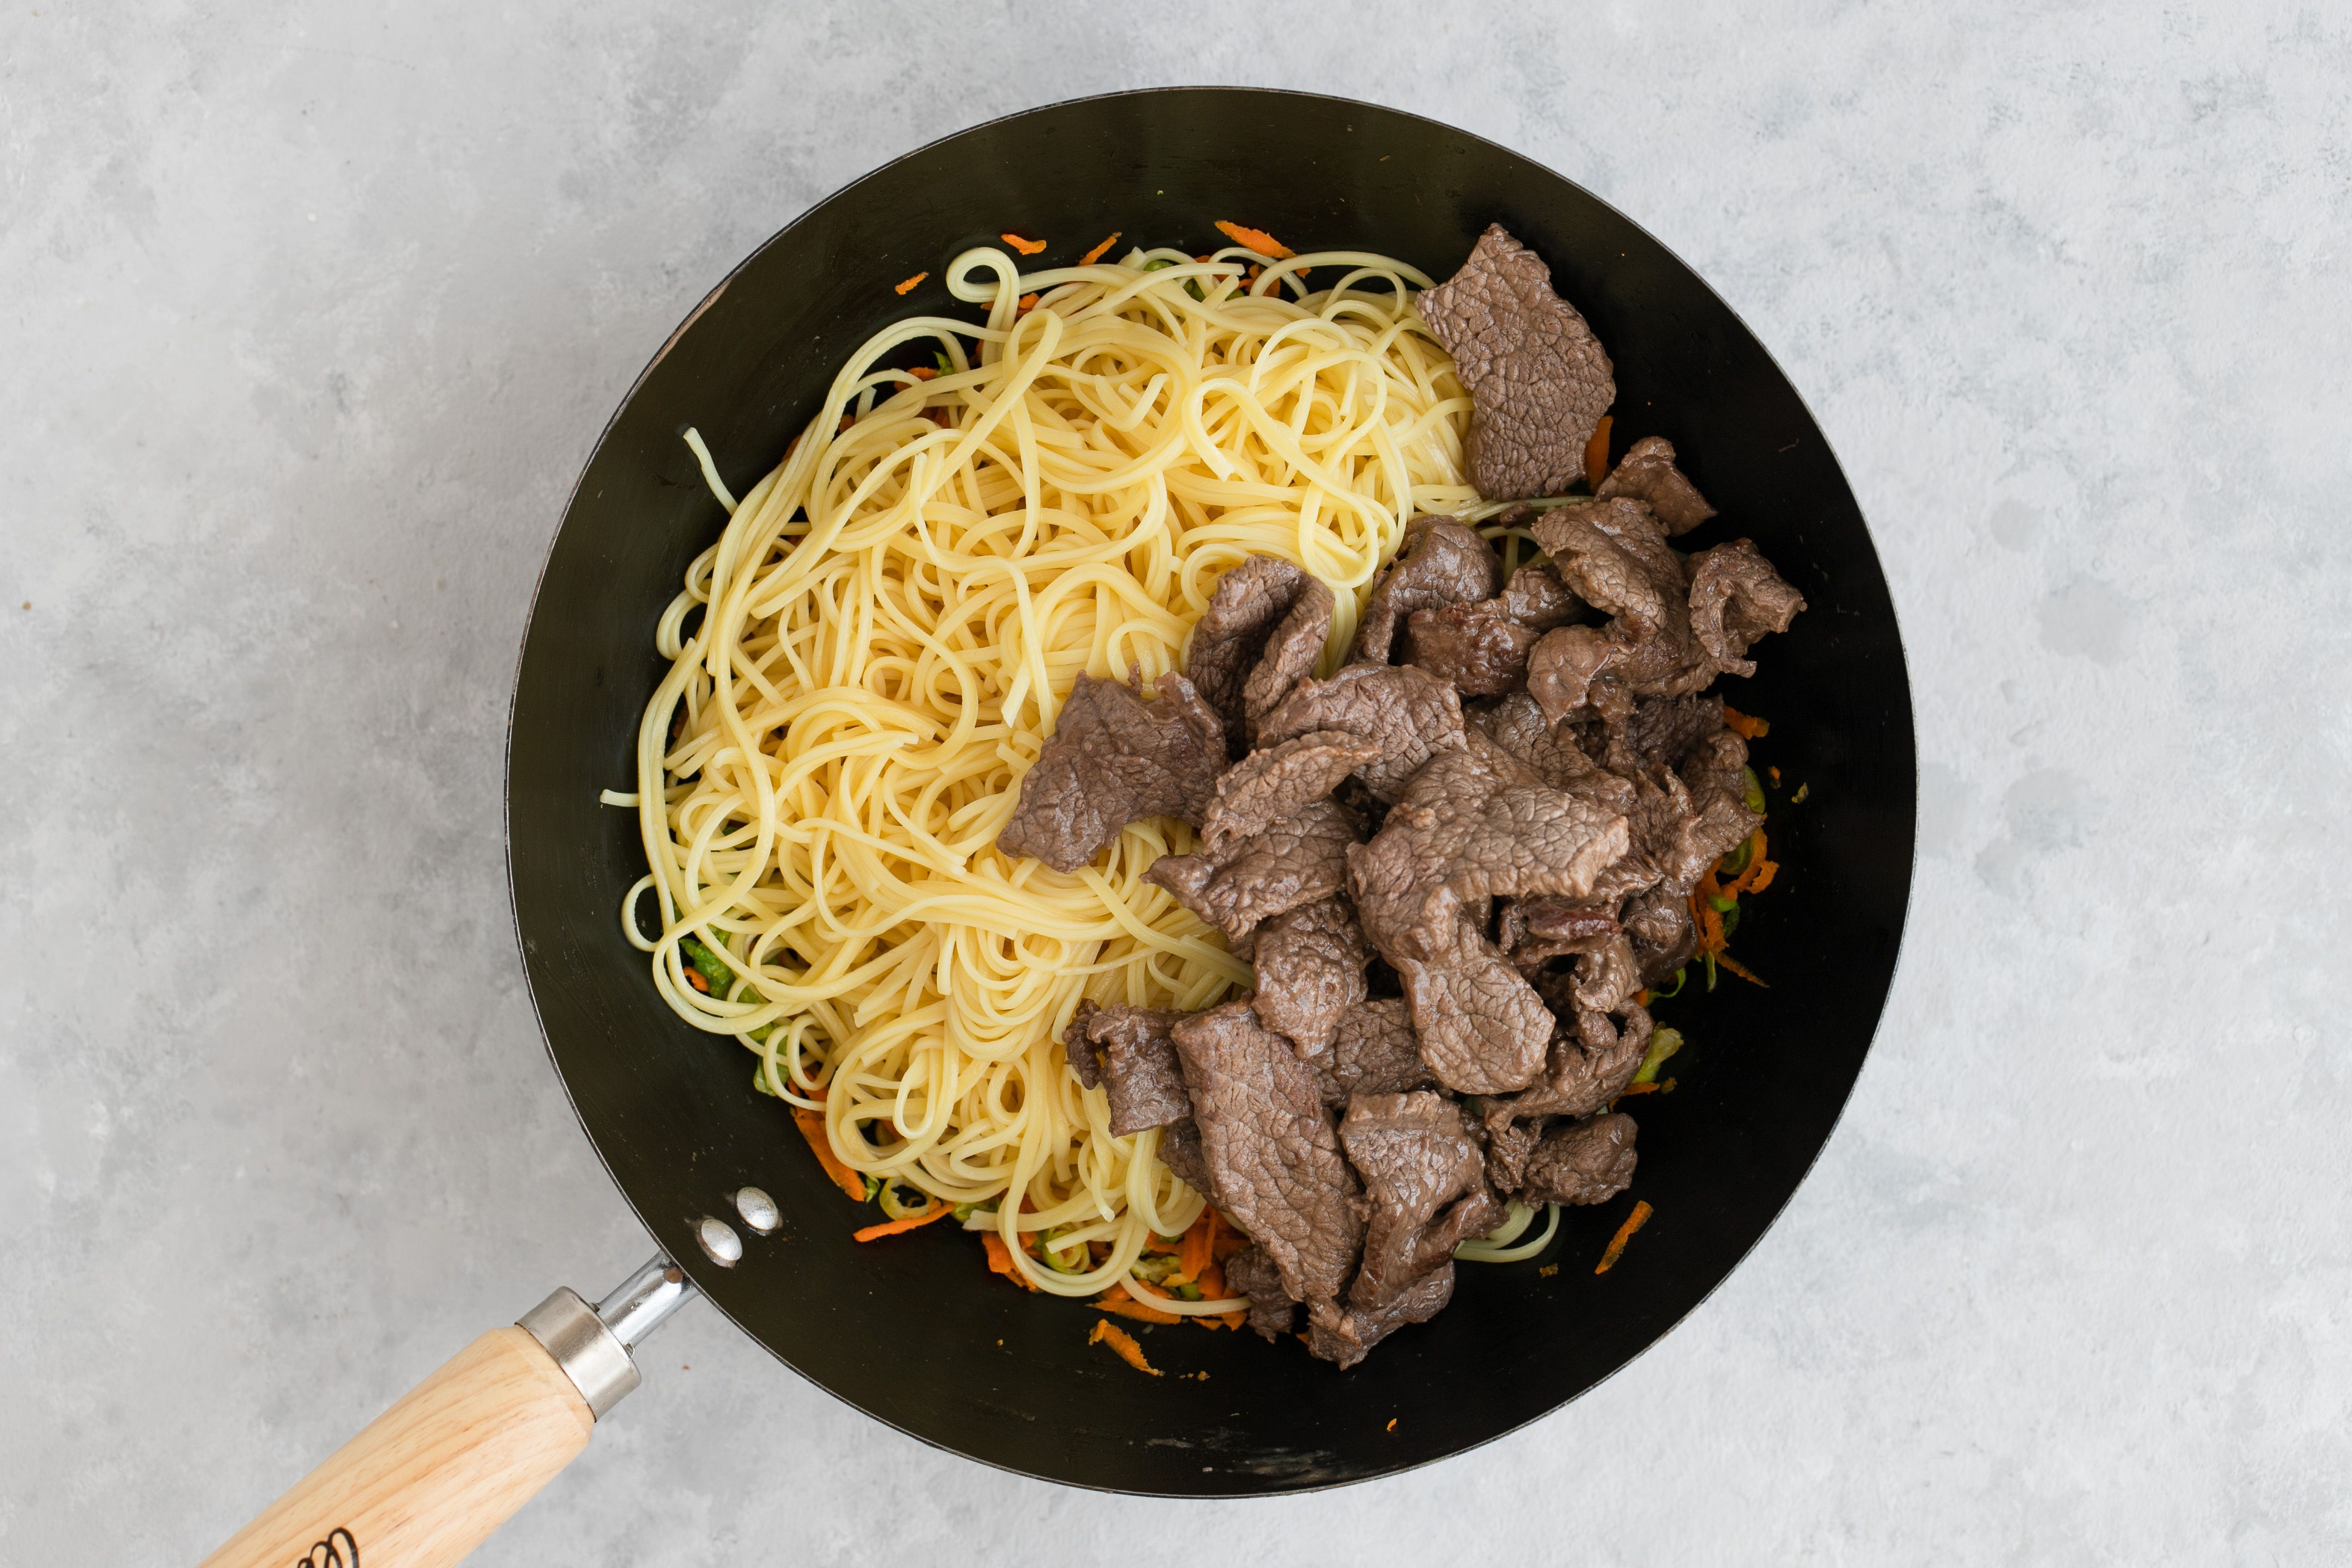 Beef and noodles in wok